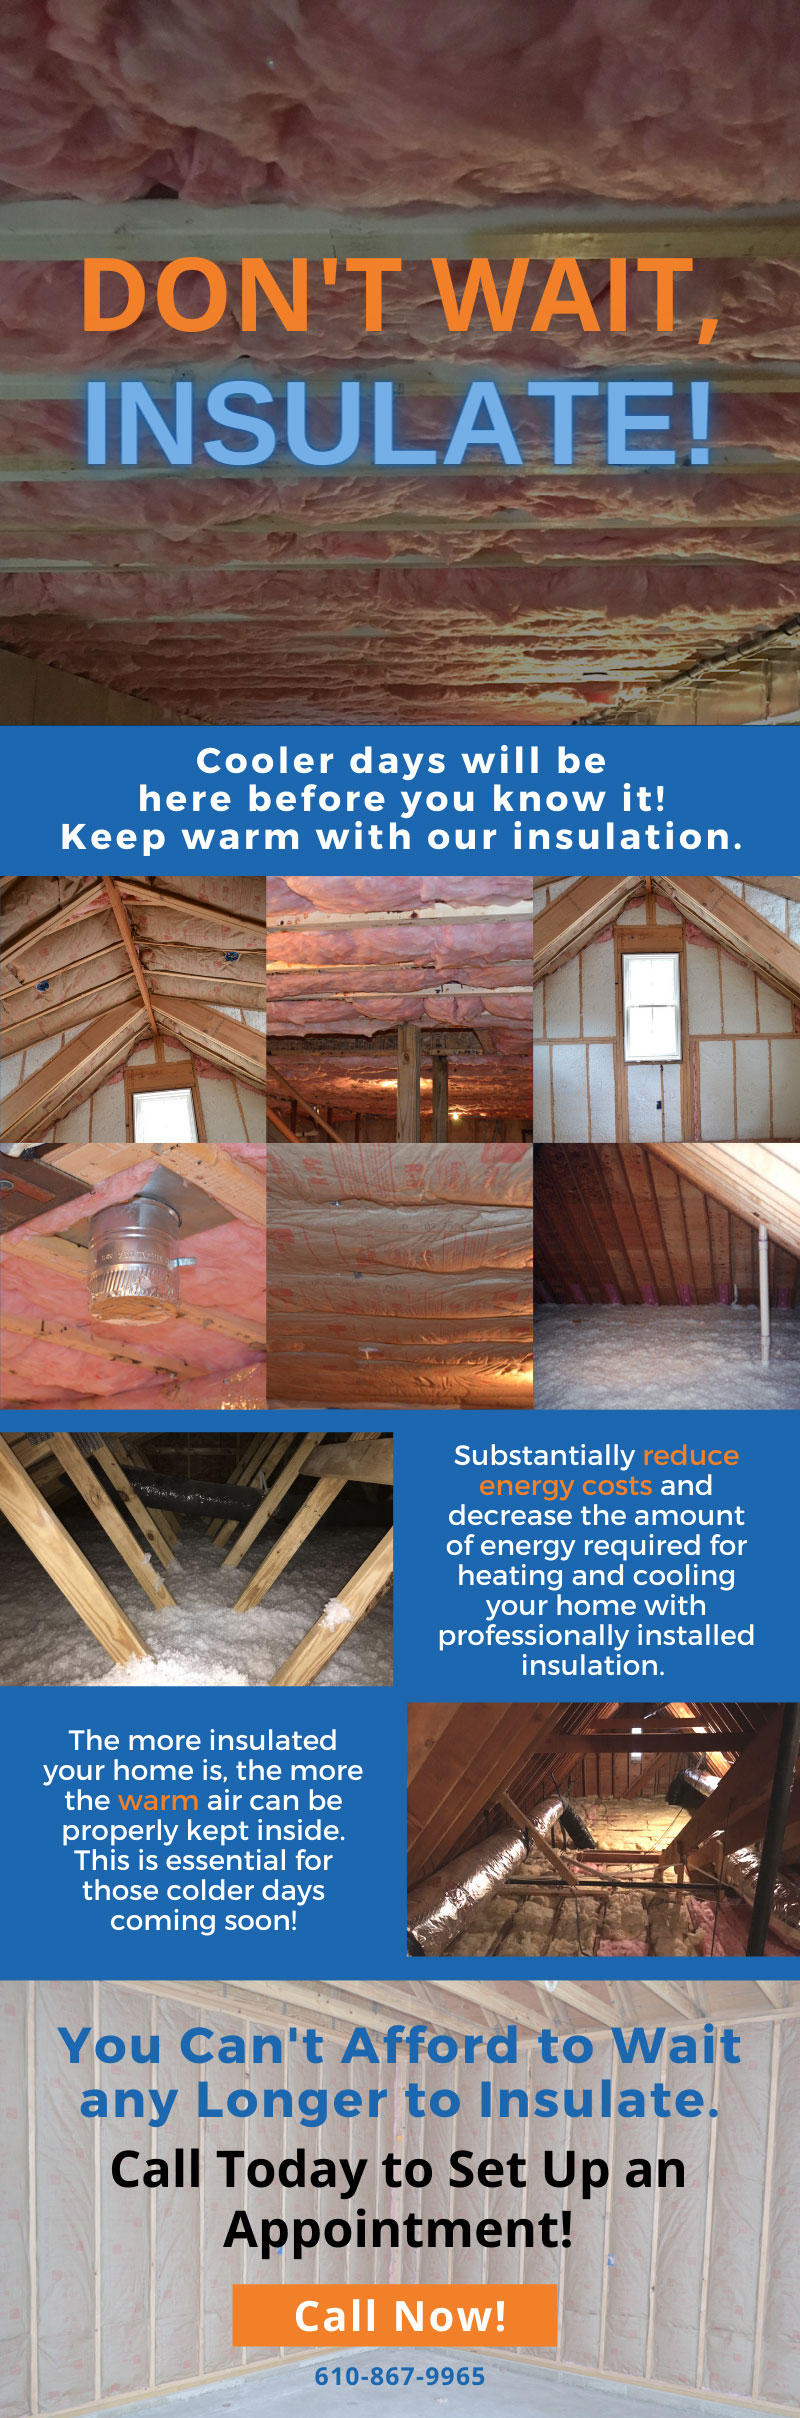 Don't Wait, Insulate! 🏠 1